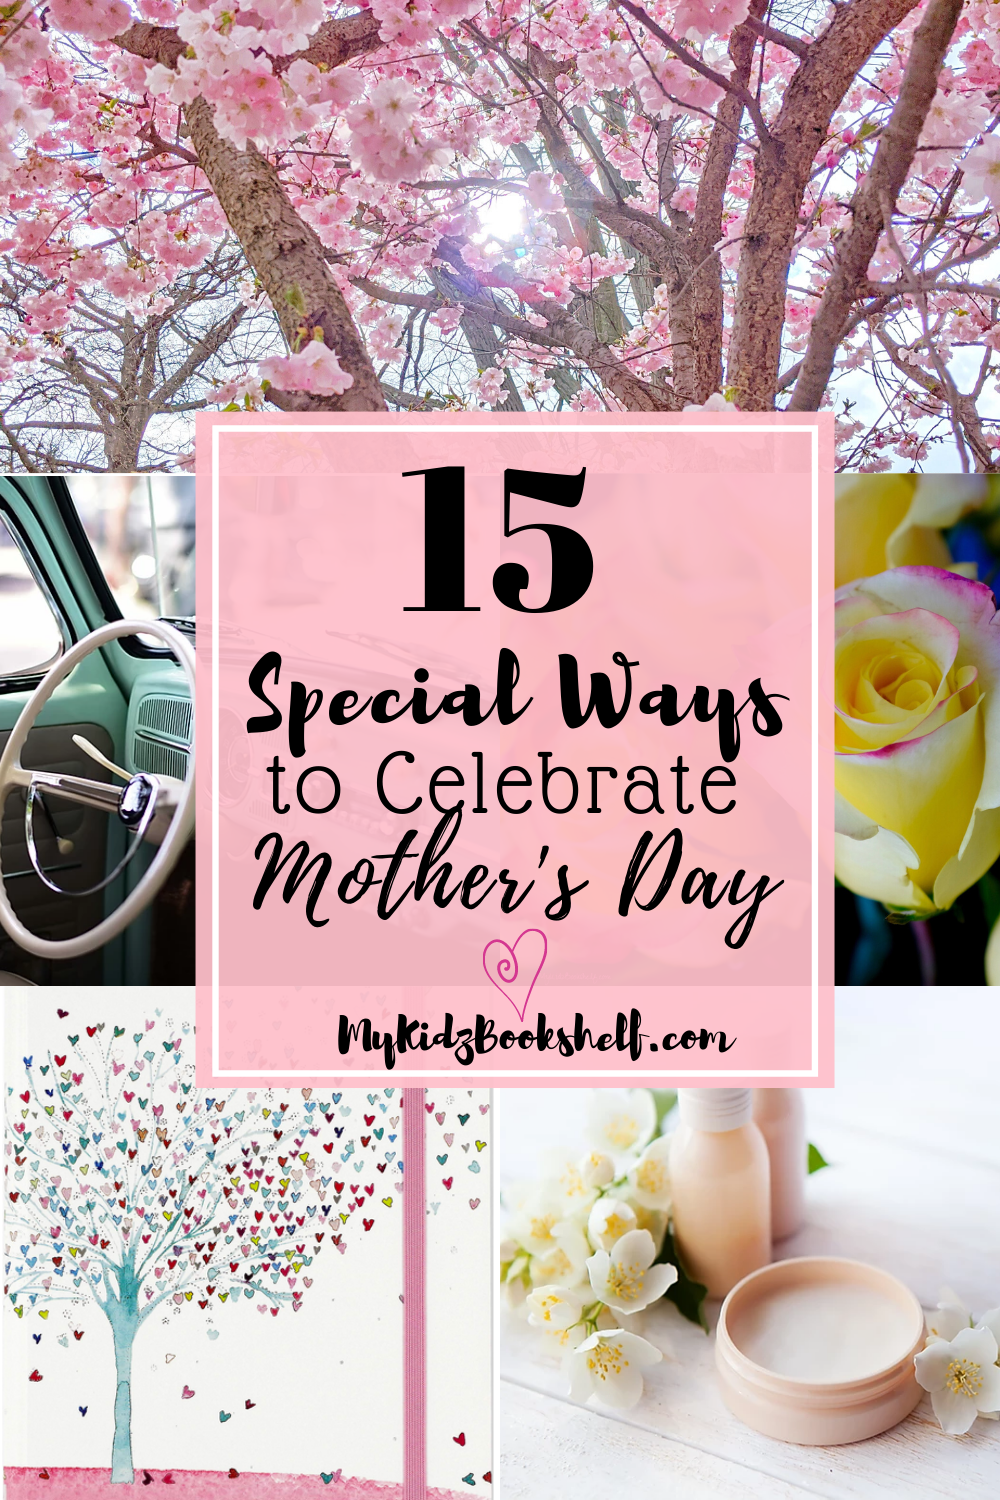 15 Special Ways to Celebrate Mother's Day Pinterest pin with journal car, blooms, roses and spa stuff